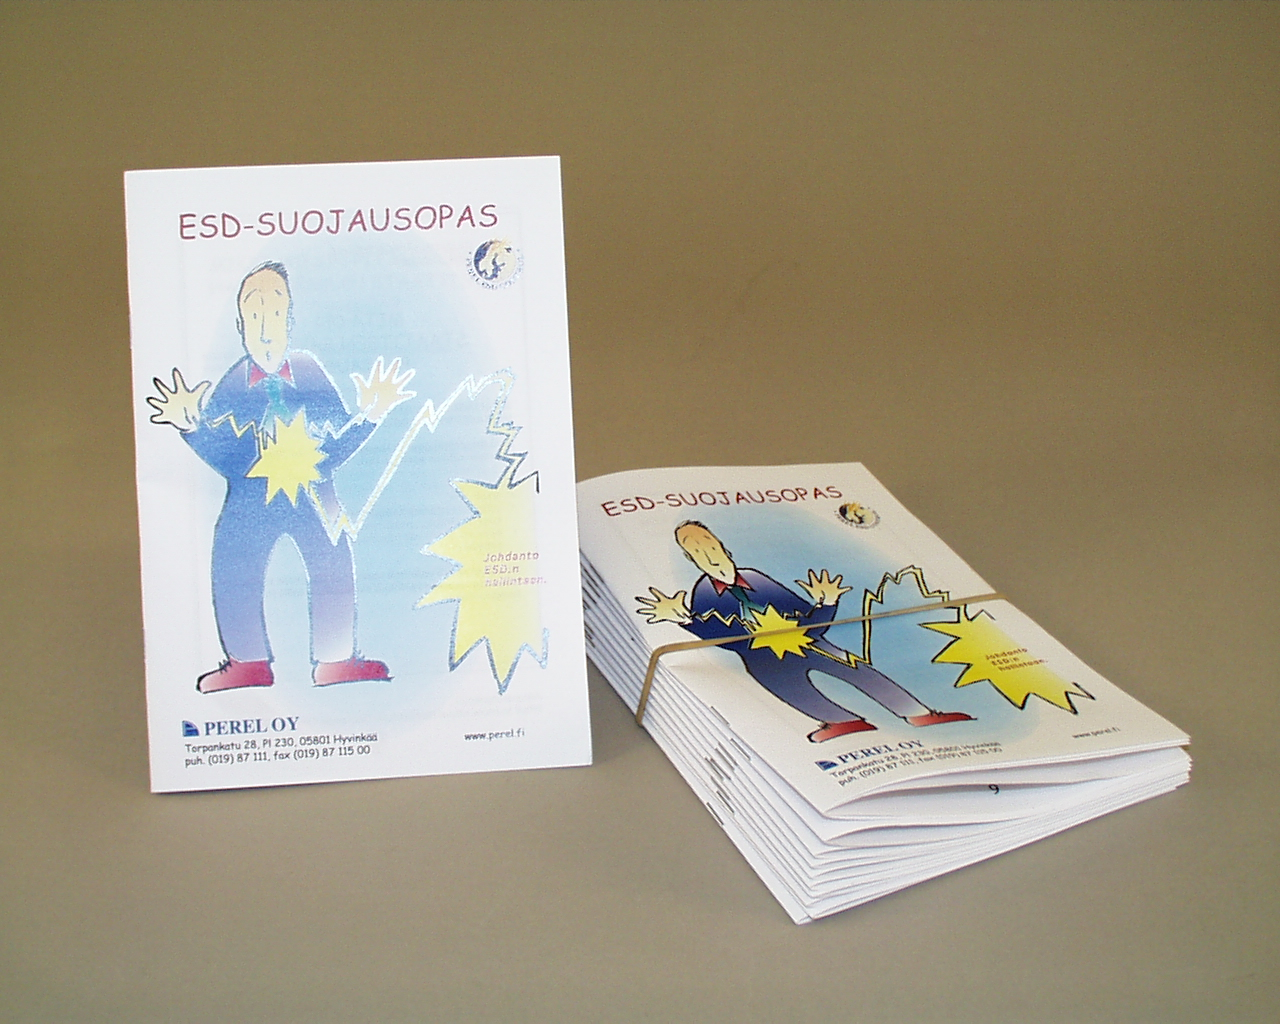 ESD-guide booklet 15 pag. 10pcs/set